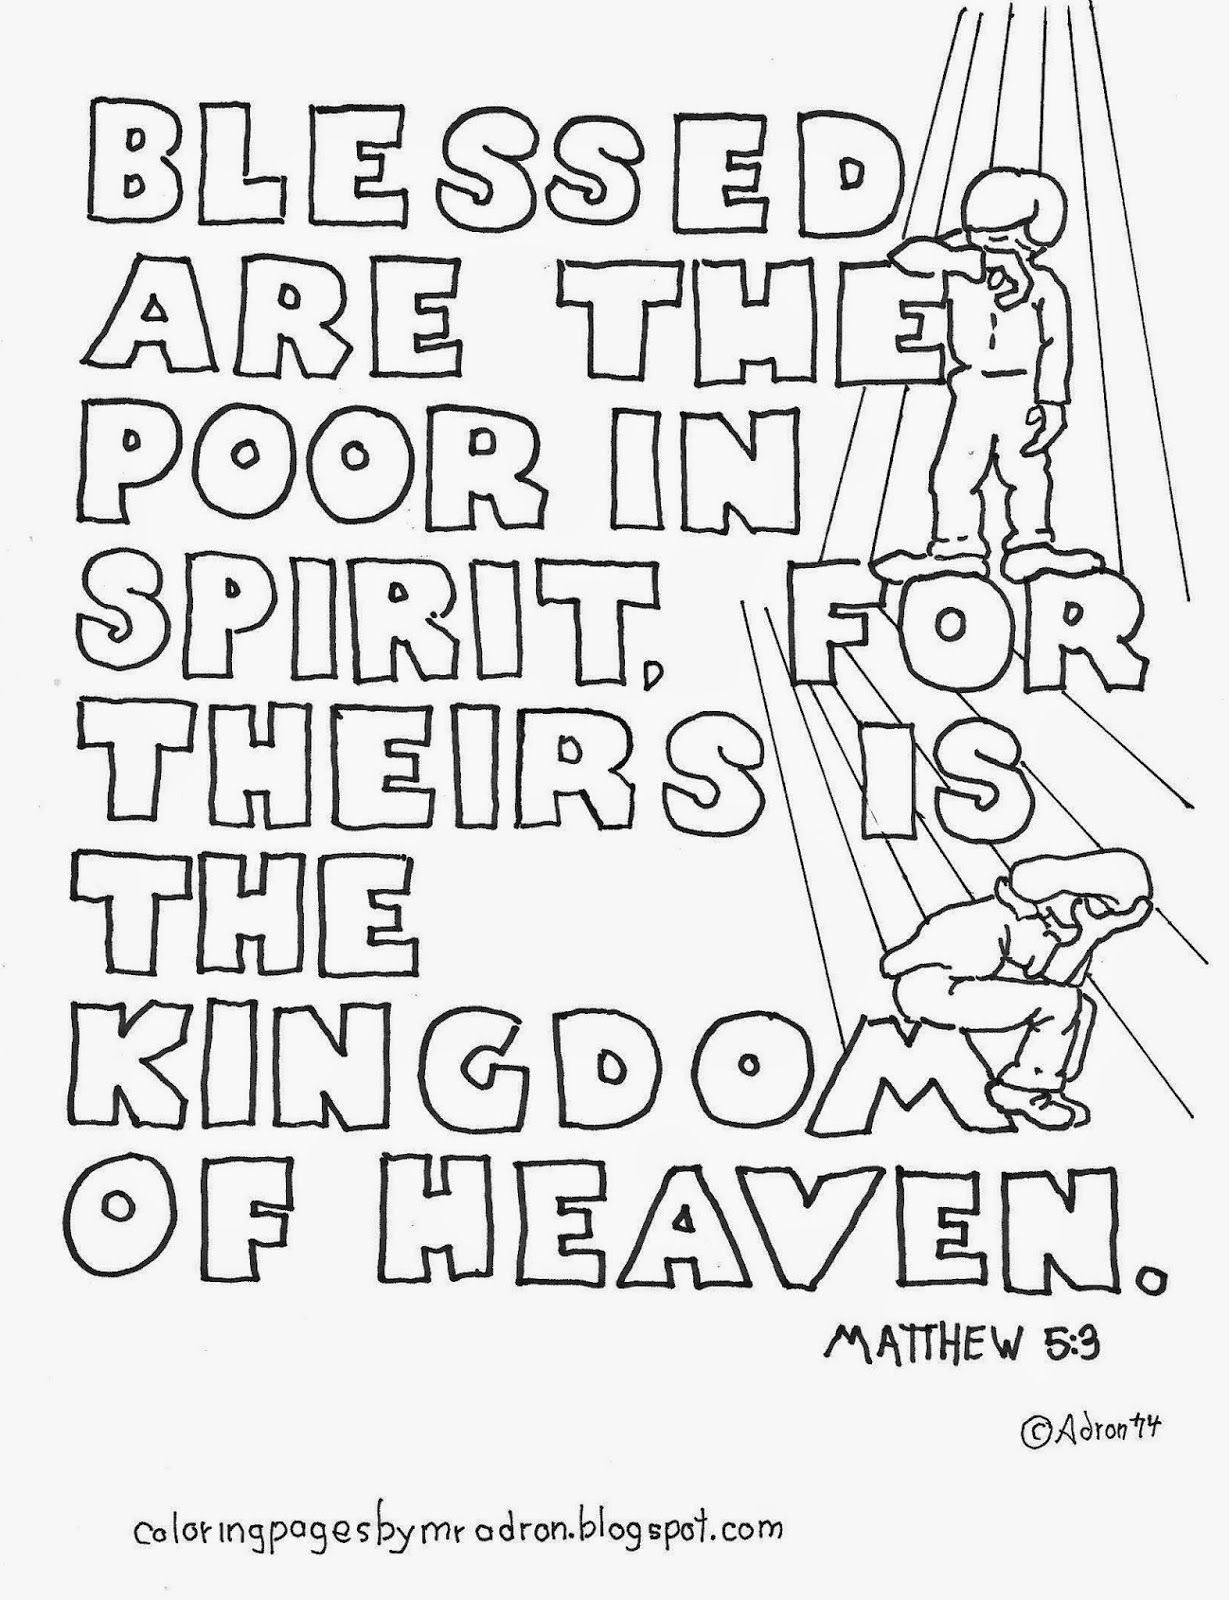 Coloring pages for kids by mr adron matthew 53 blessed are the poor in spirit free c